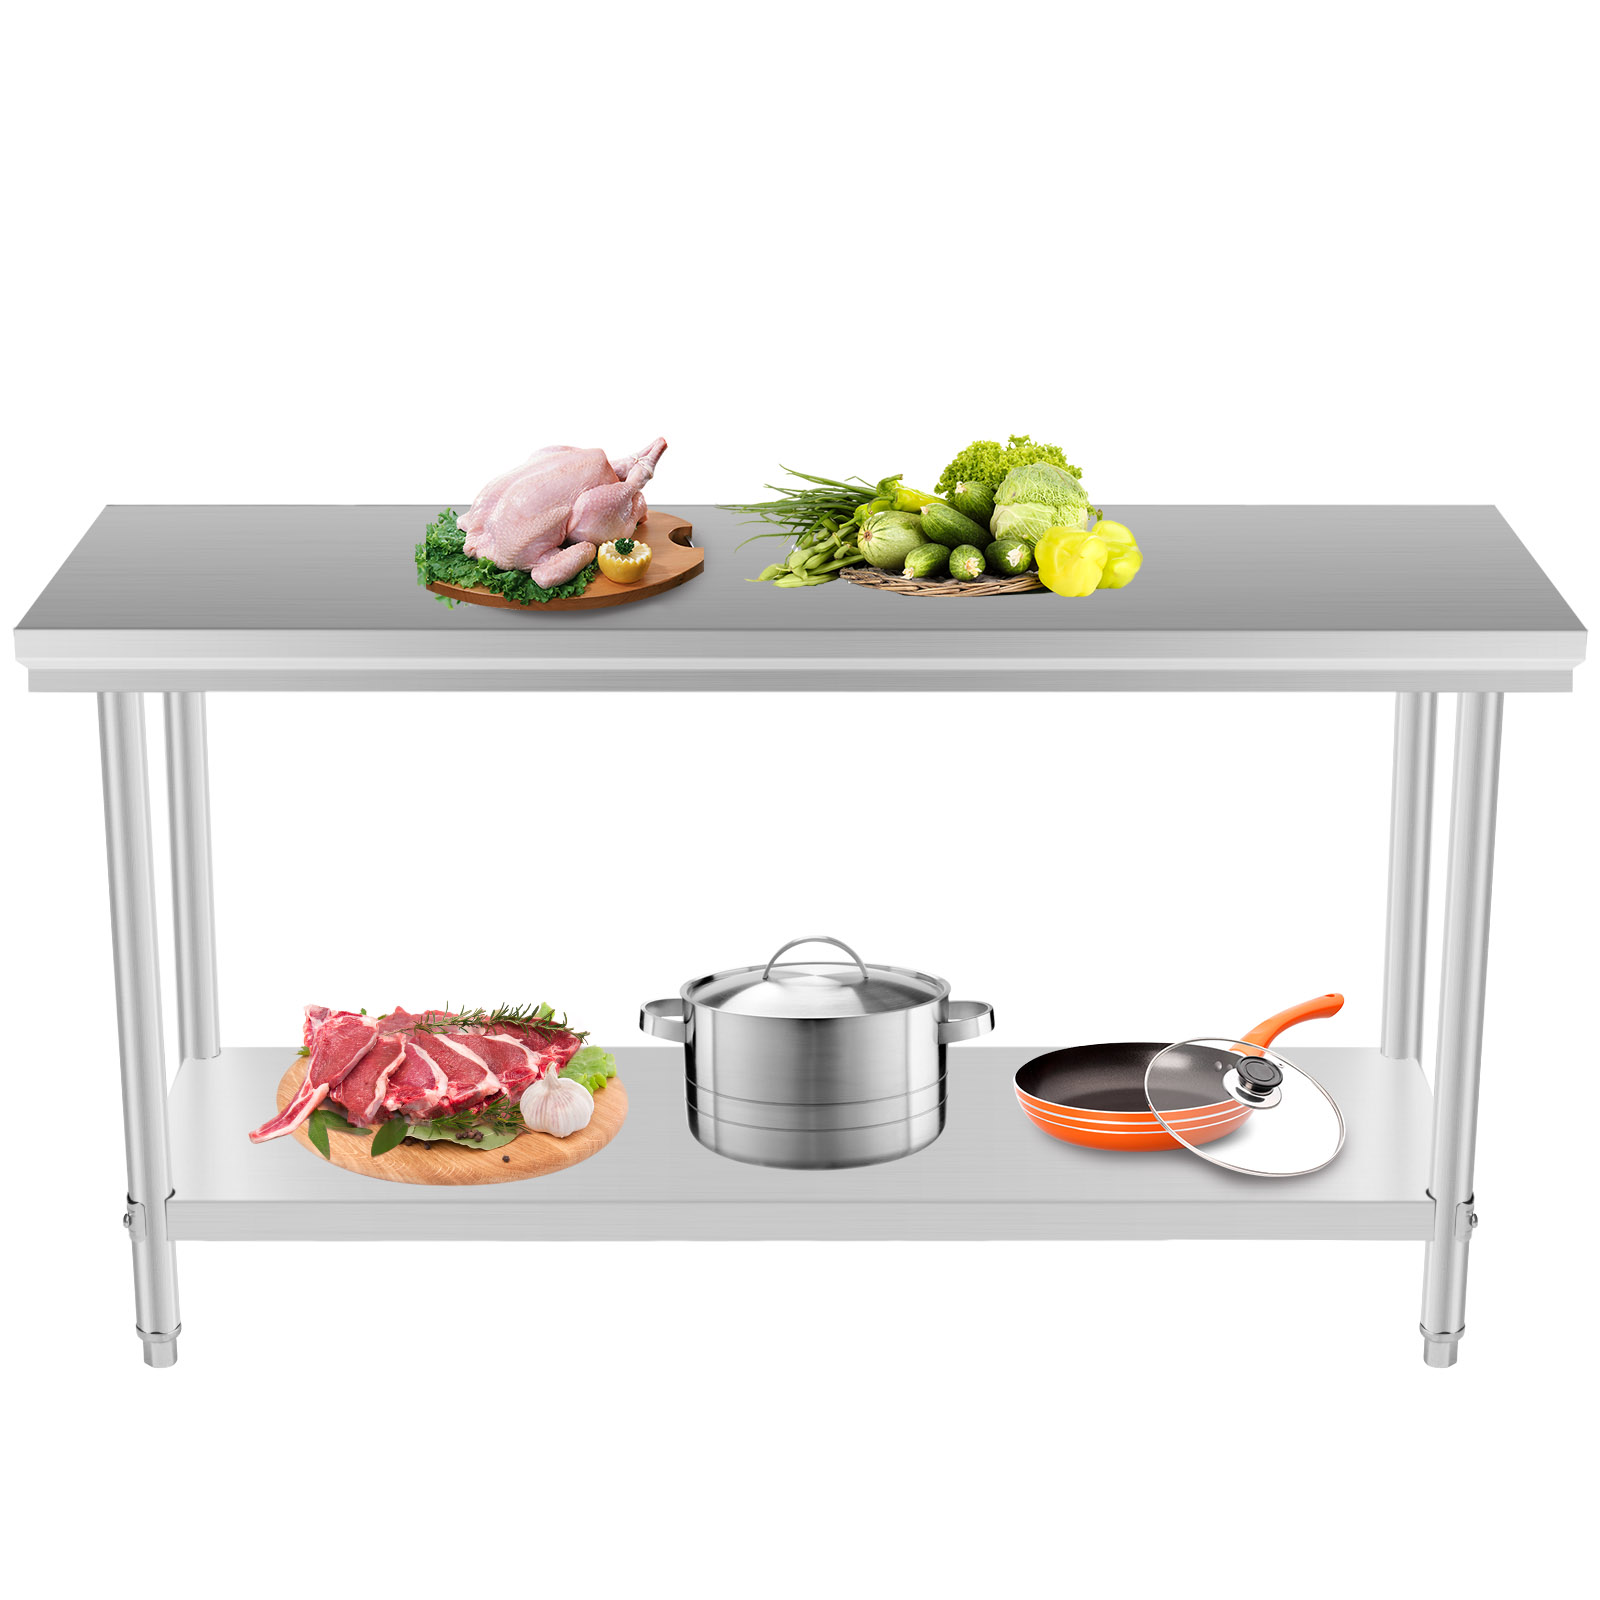 New mercial Stainless Steel Kitchen Work Prep Table NSF